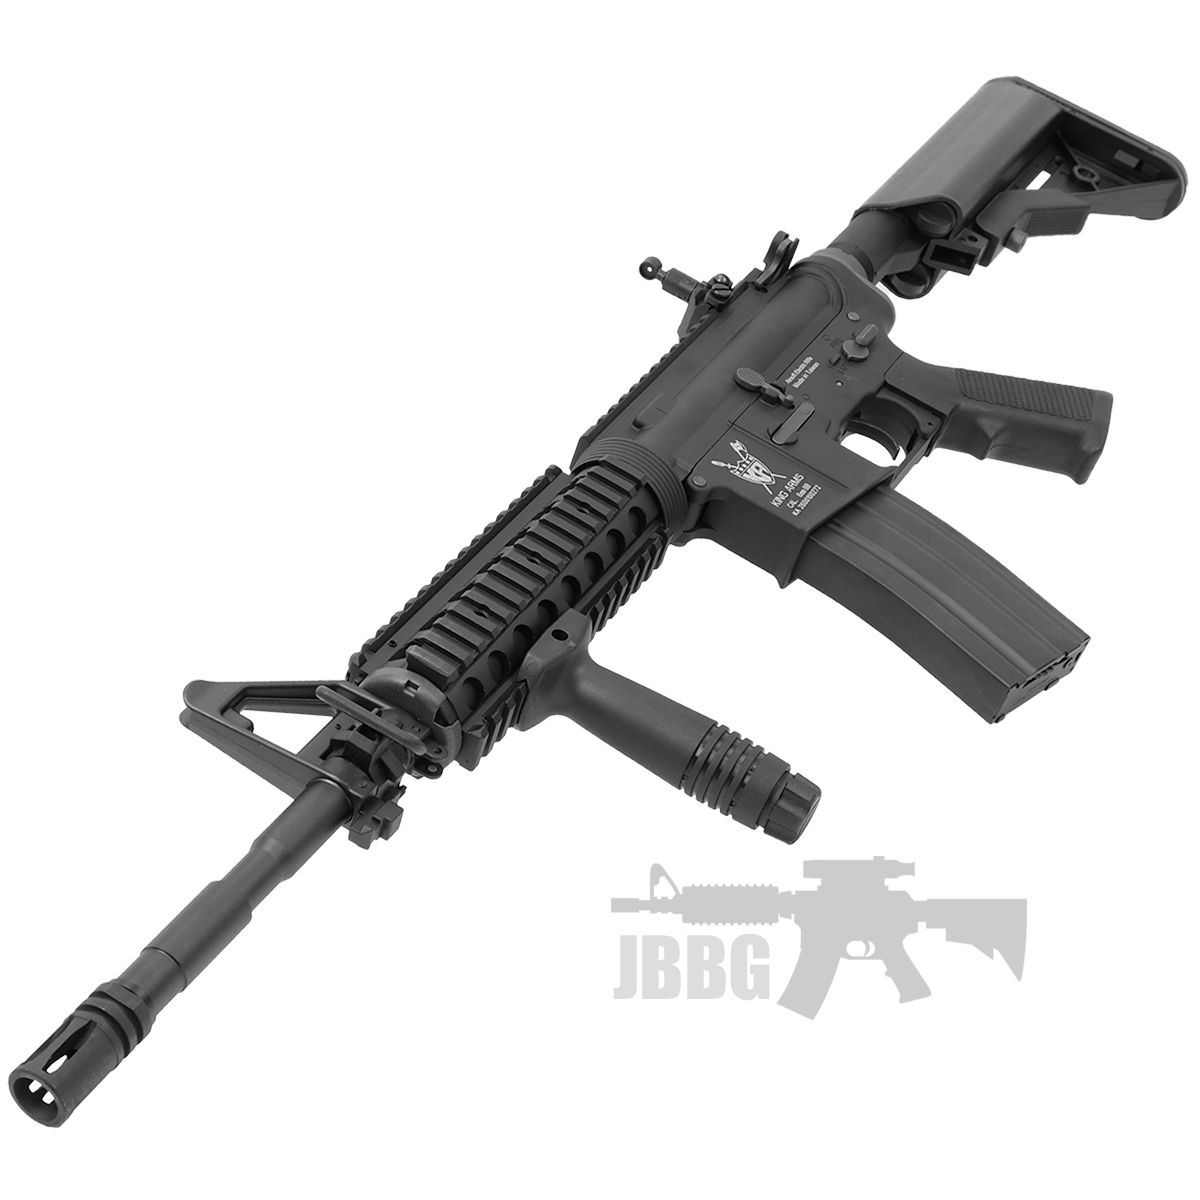 King Arms M4 RIS with Mosfet Advance Airsoft Gun 5